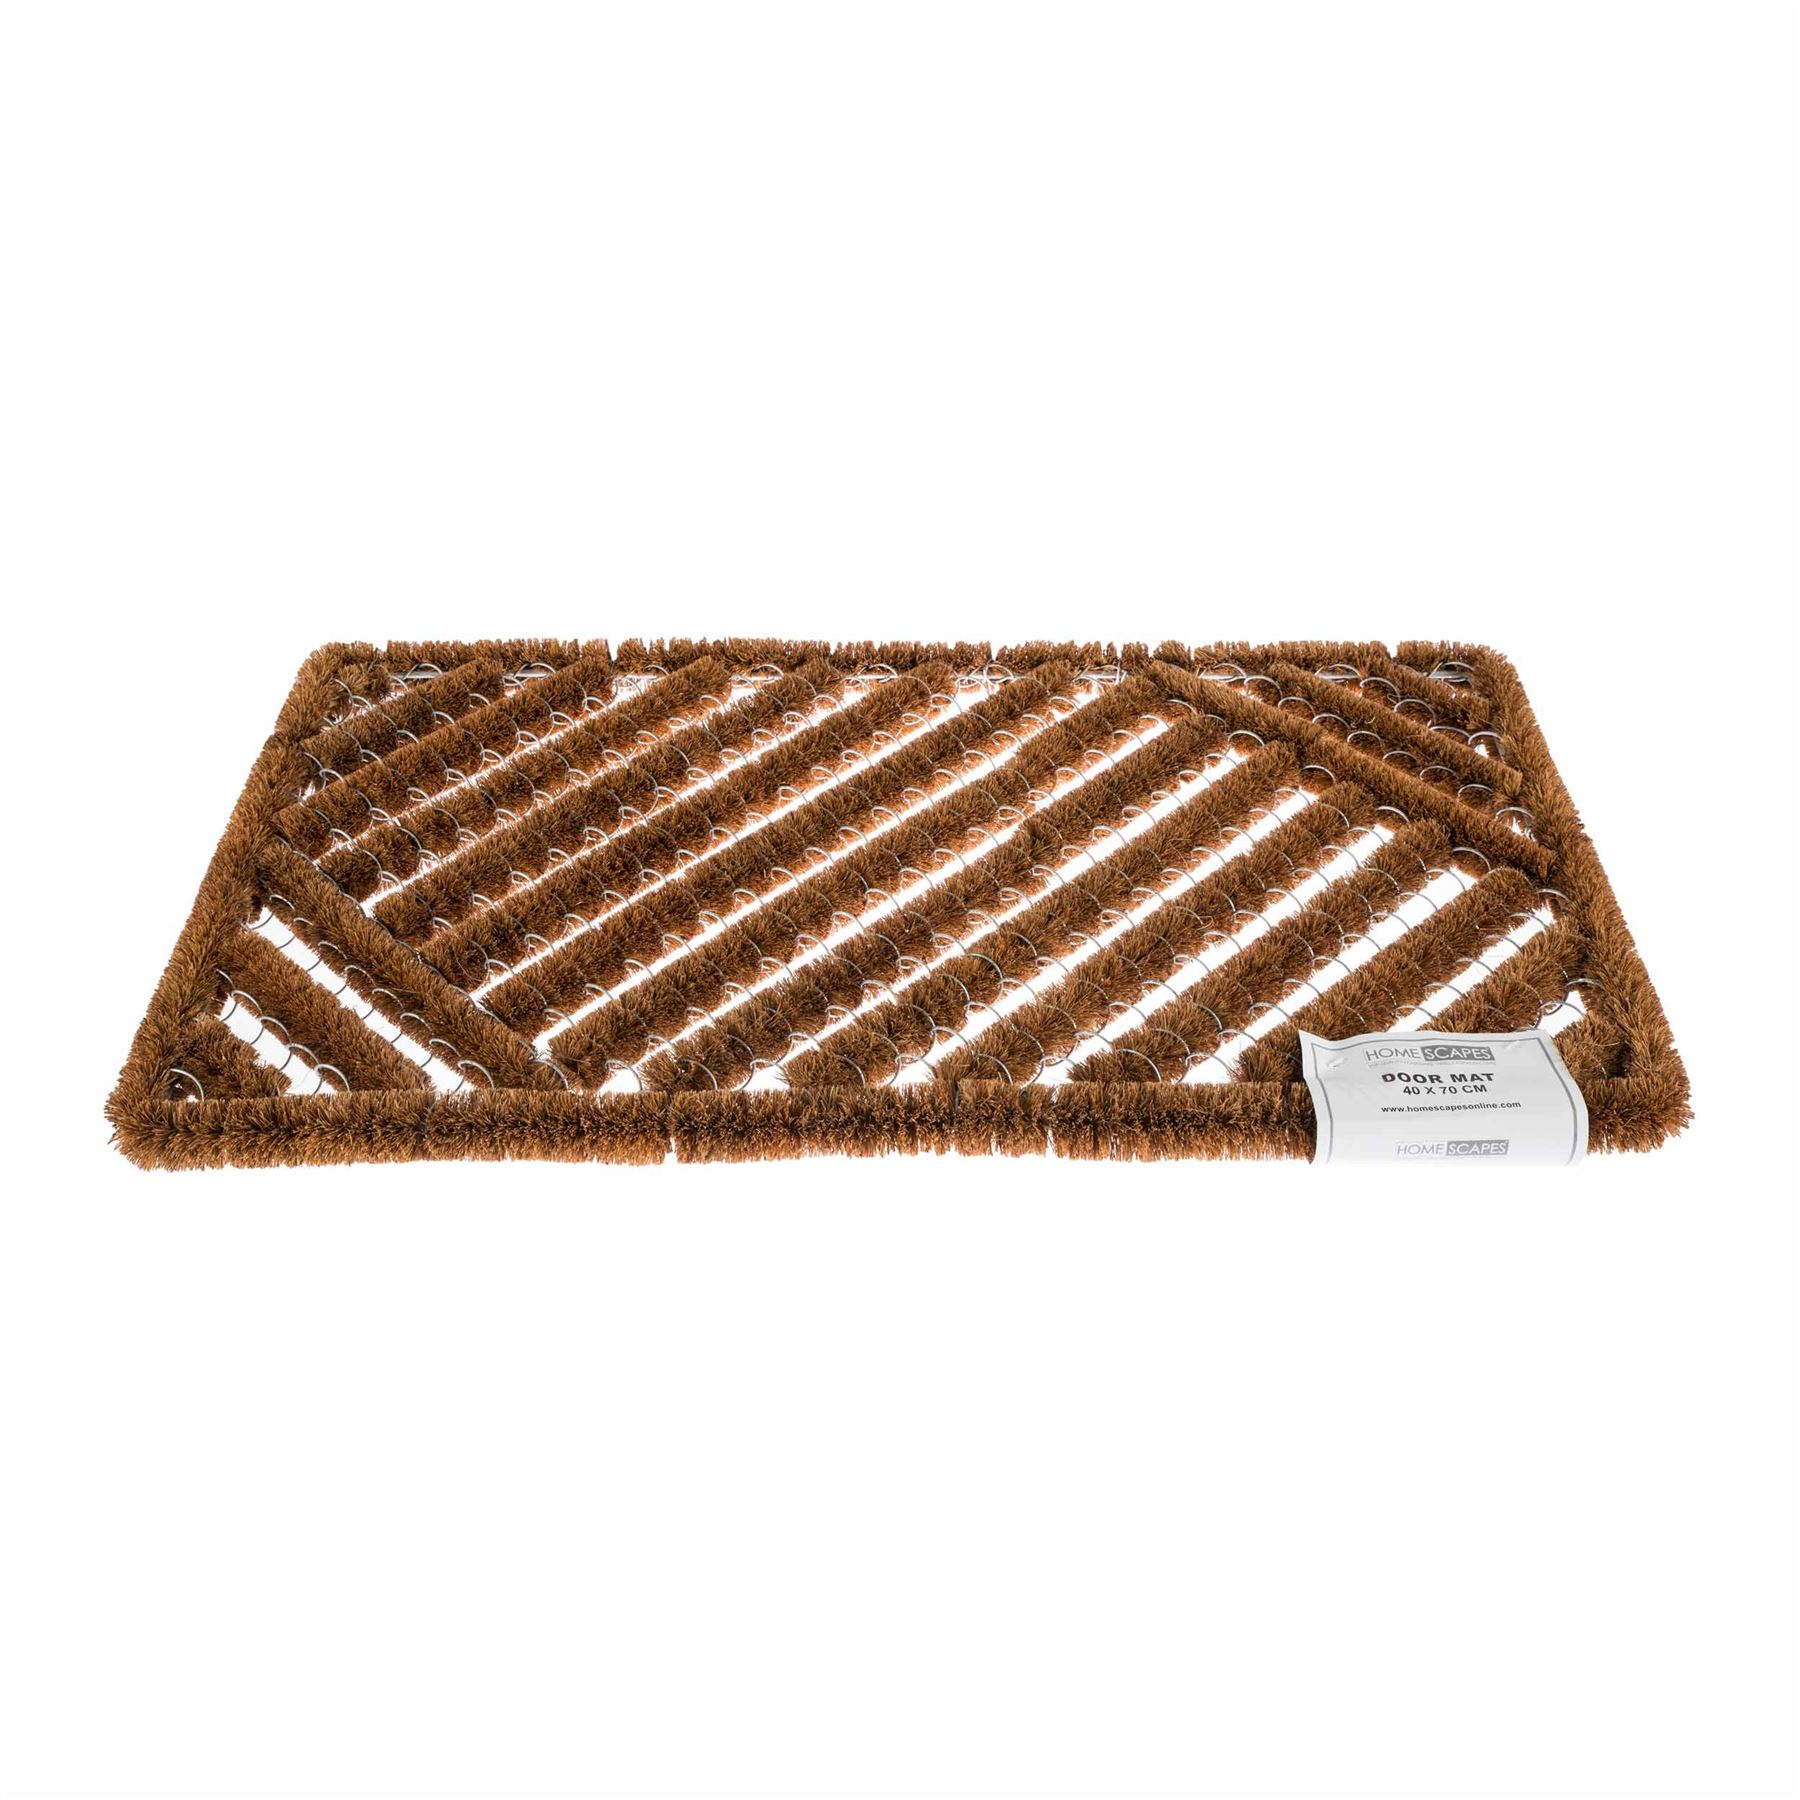 Coir Rubber Door Mat Indoor Outdoor Use Large Wrought Iron